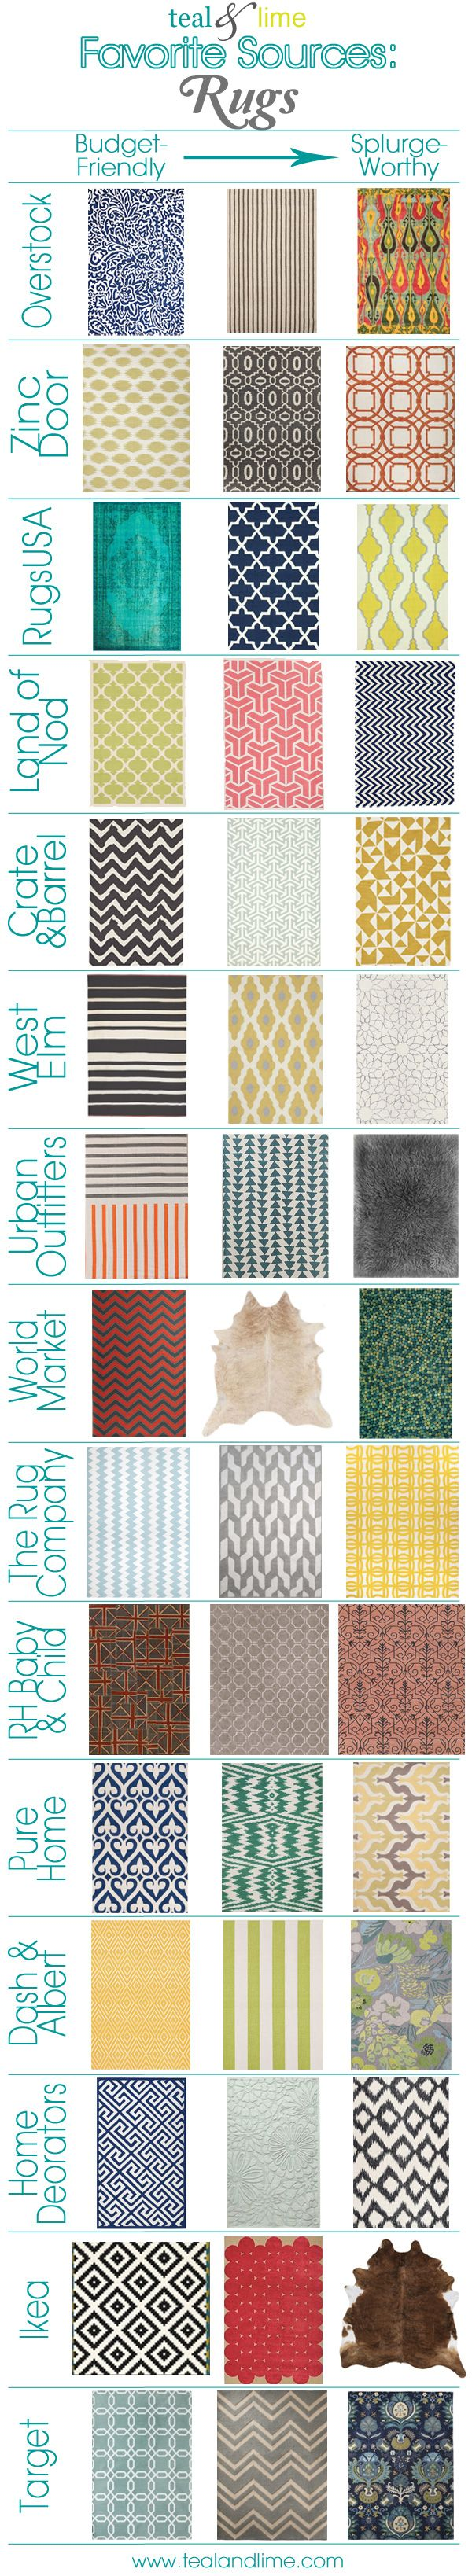 Zinc Door – A well-curated selection of rug brands at low to high prices.  I love every single rug they sell.  Pictured: Nyasha White/Wild Lime, Anchor Pigeon Woven Wool Rug, Arabesque Coral Rug @Jackie Godbold Godbold Godbold Godbold Godbold Godbold Godbold Godbold Godbold Godbold Godbold Hernandez @zinc_door #zincdoor #zdpress